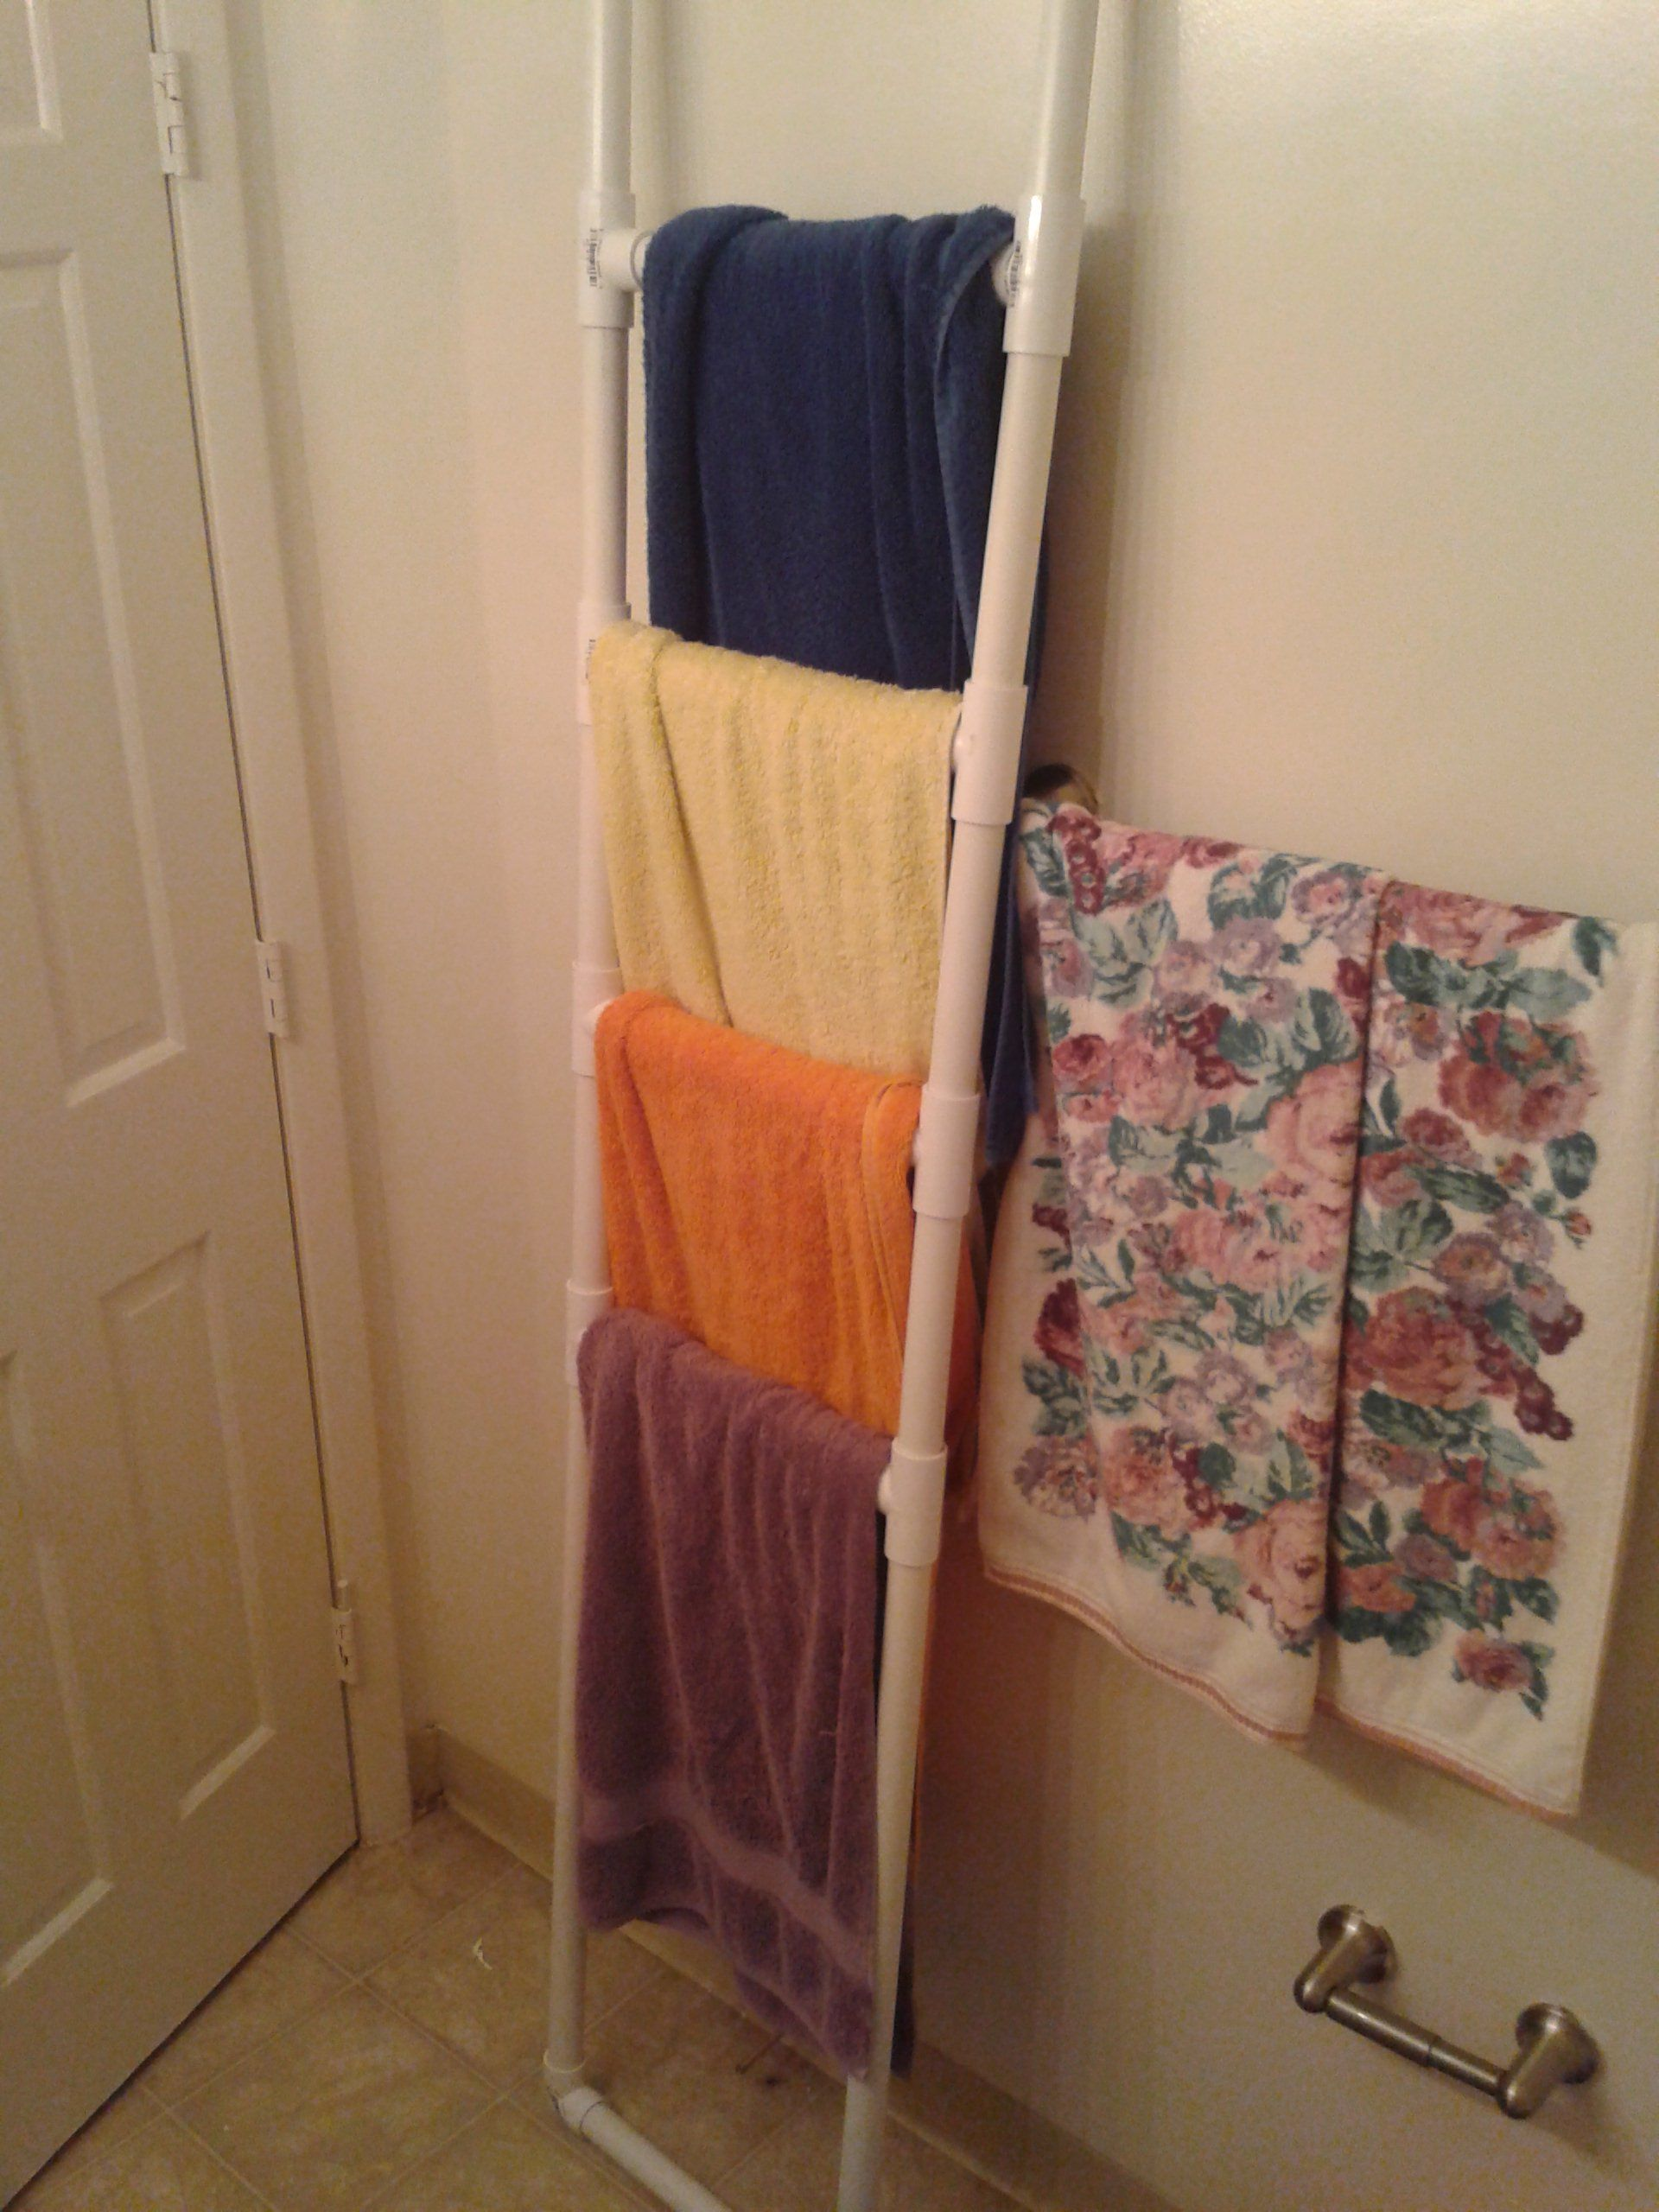 Towel Rack Pvc If Not Glued Comes Apart Easy Free Standing